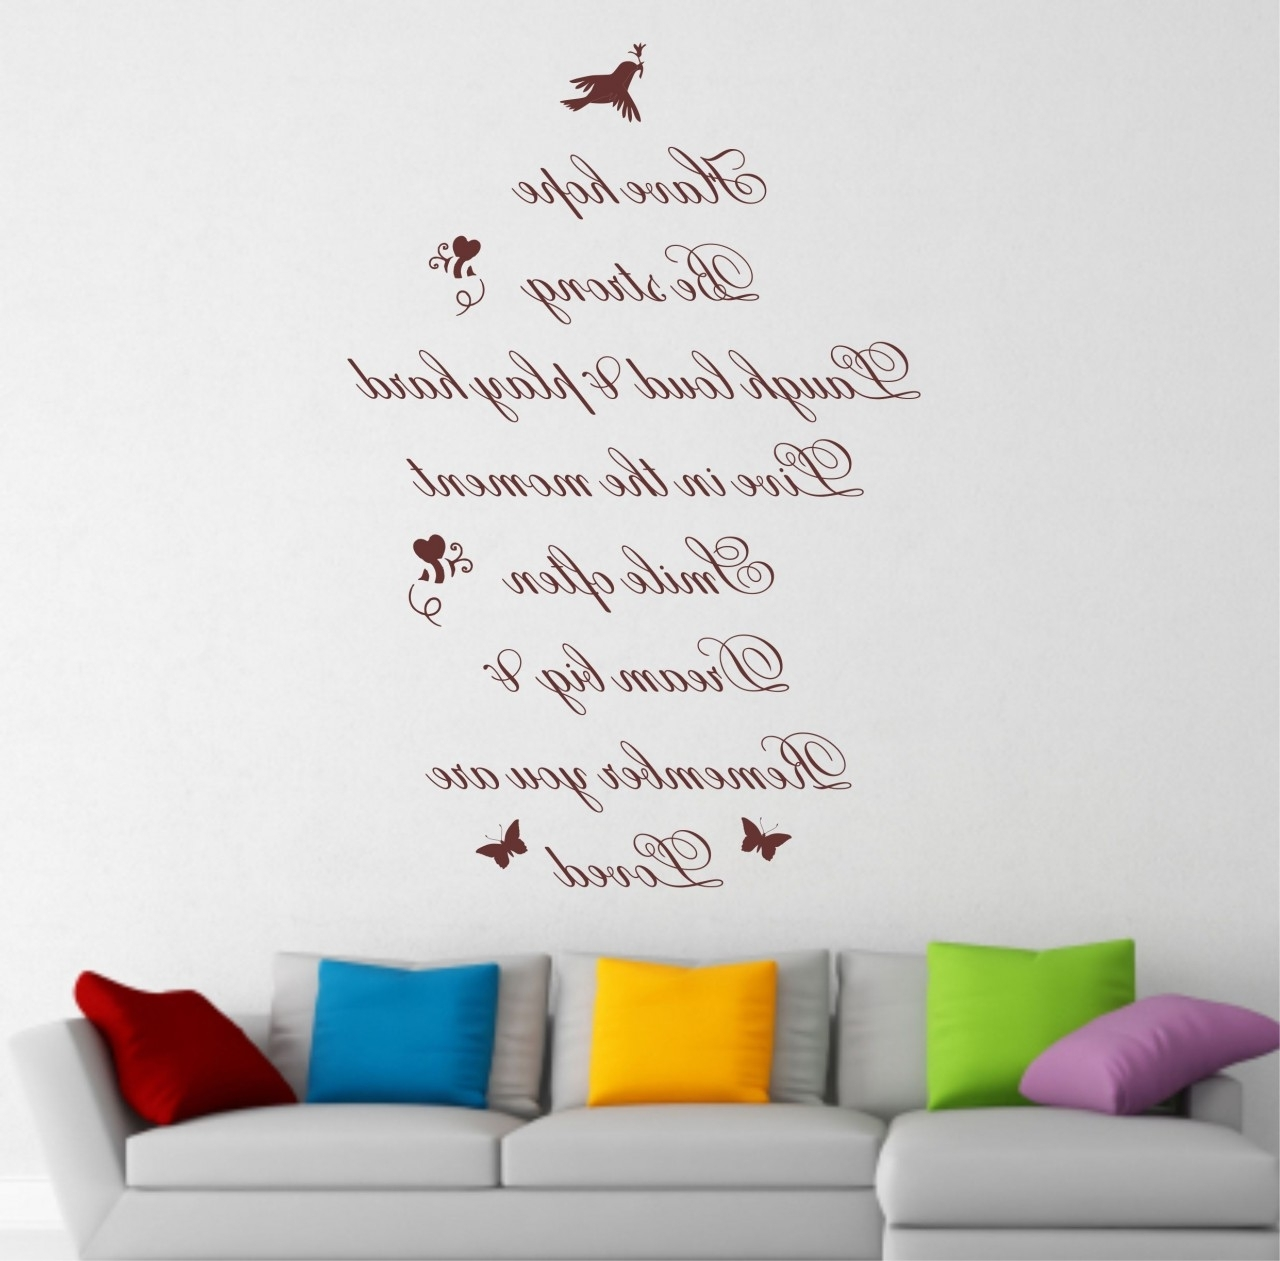 Widely Used Wall Art Sayings Regarding Stunning Wall Art Sayings Quotes 92 In With Wall Art Sayings Quotes (View 20 of 20)